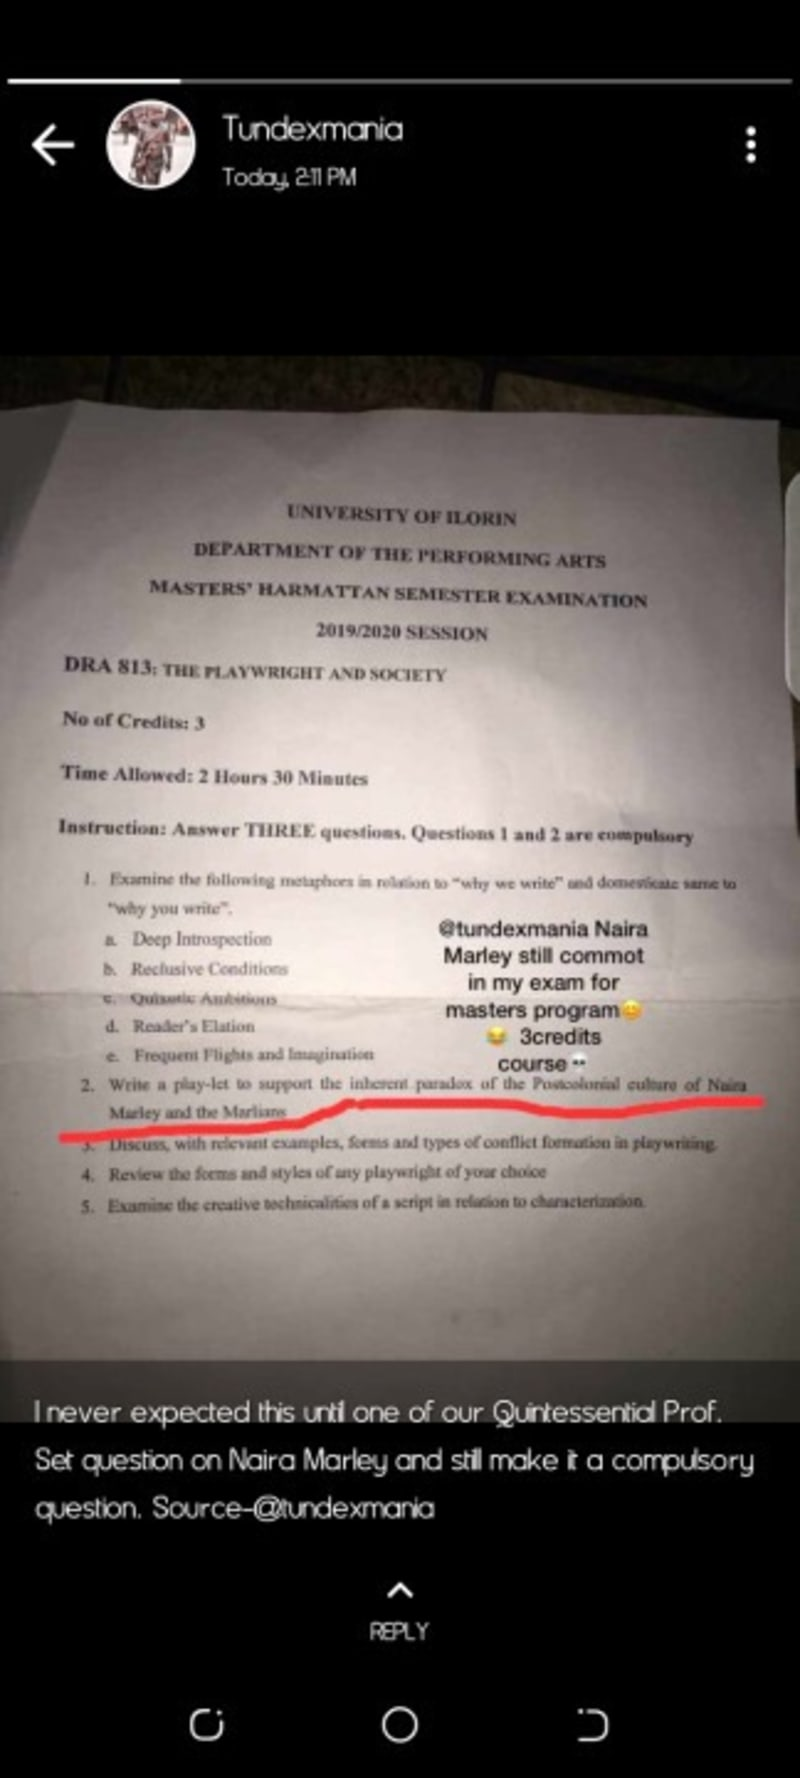 UNILORIN Lecturer Set Question On Naira Marley In Exam And Made It Compulsory